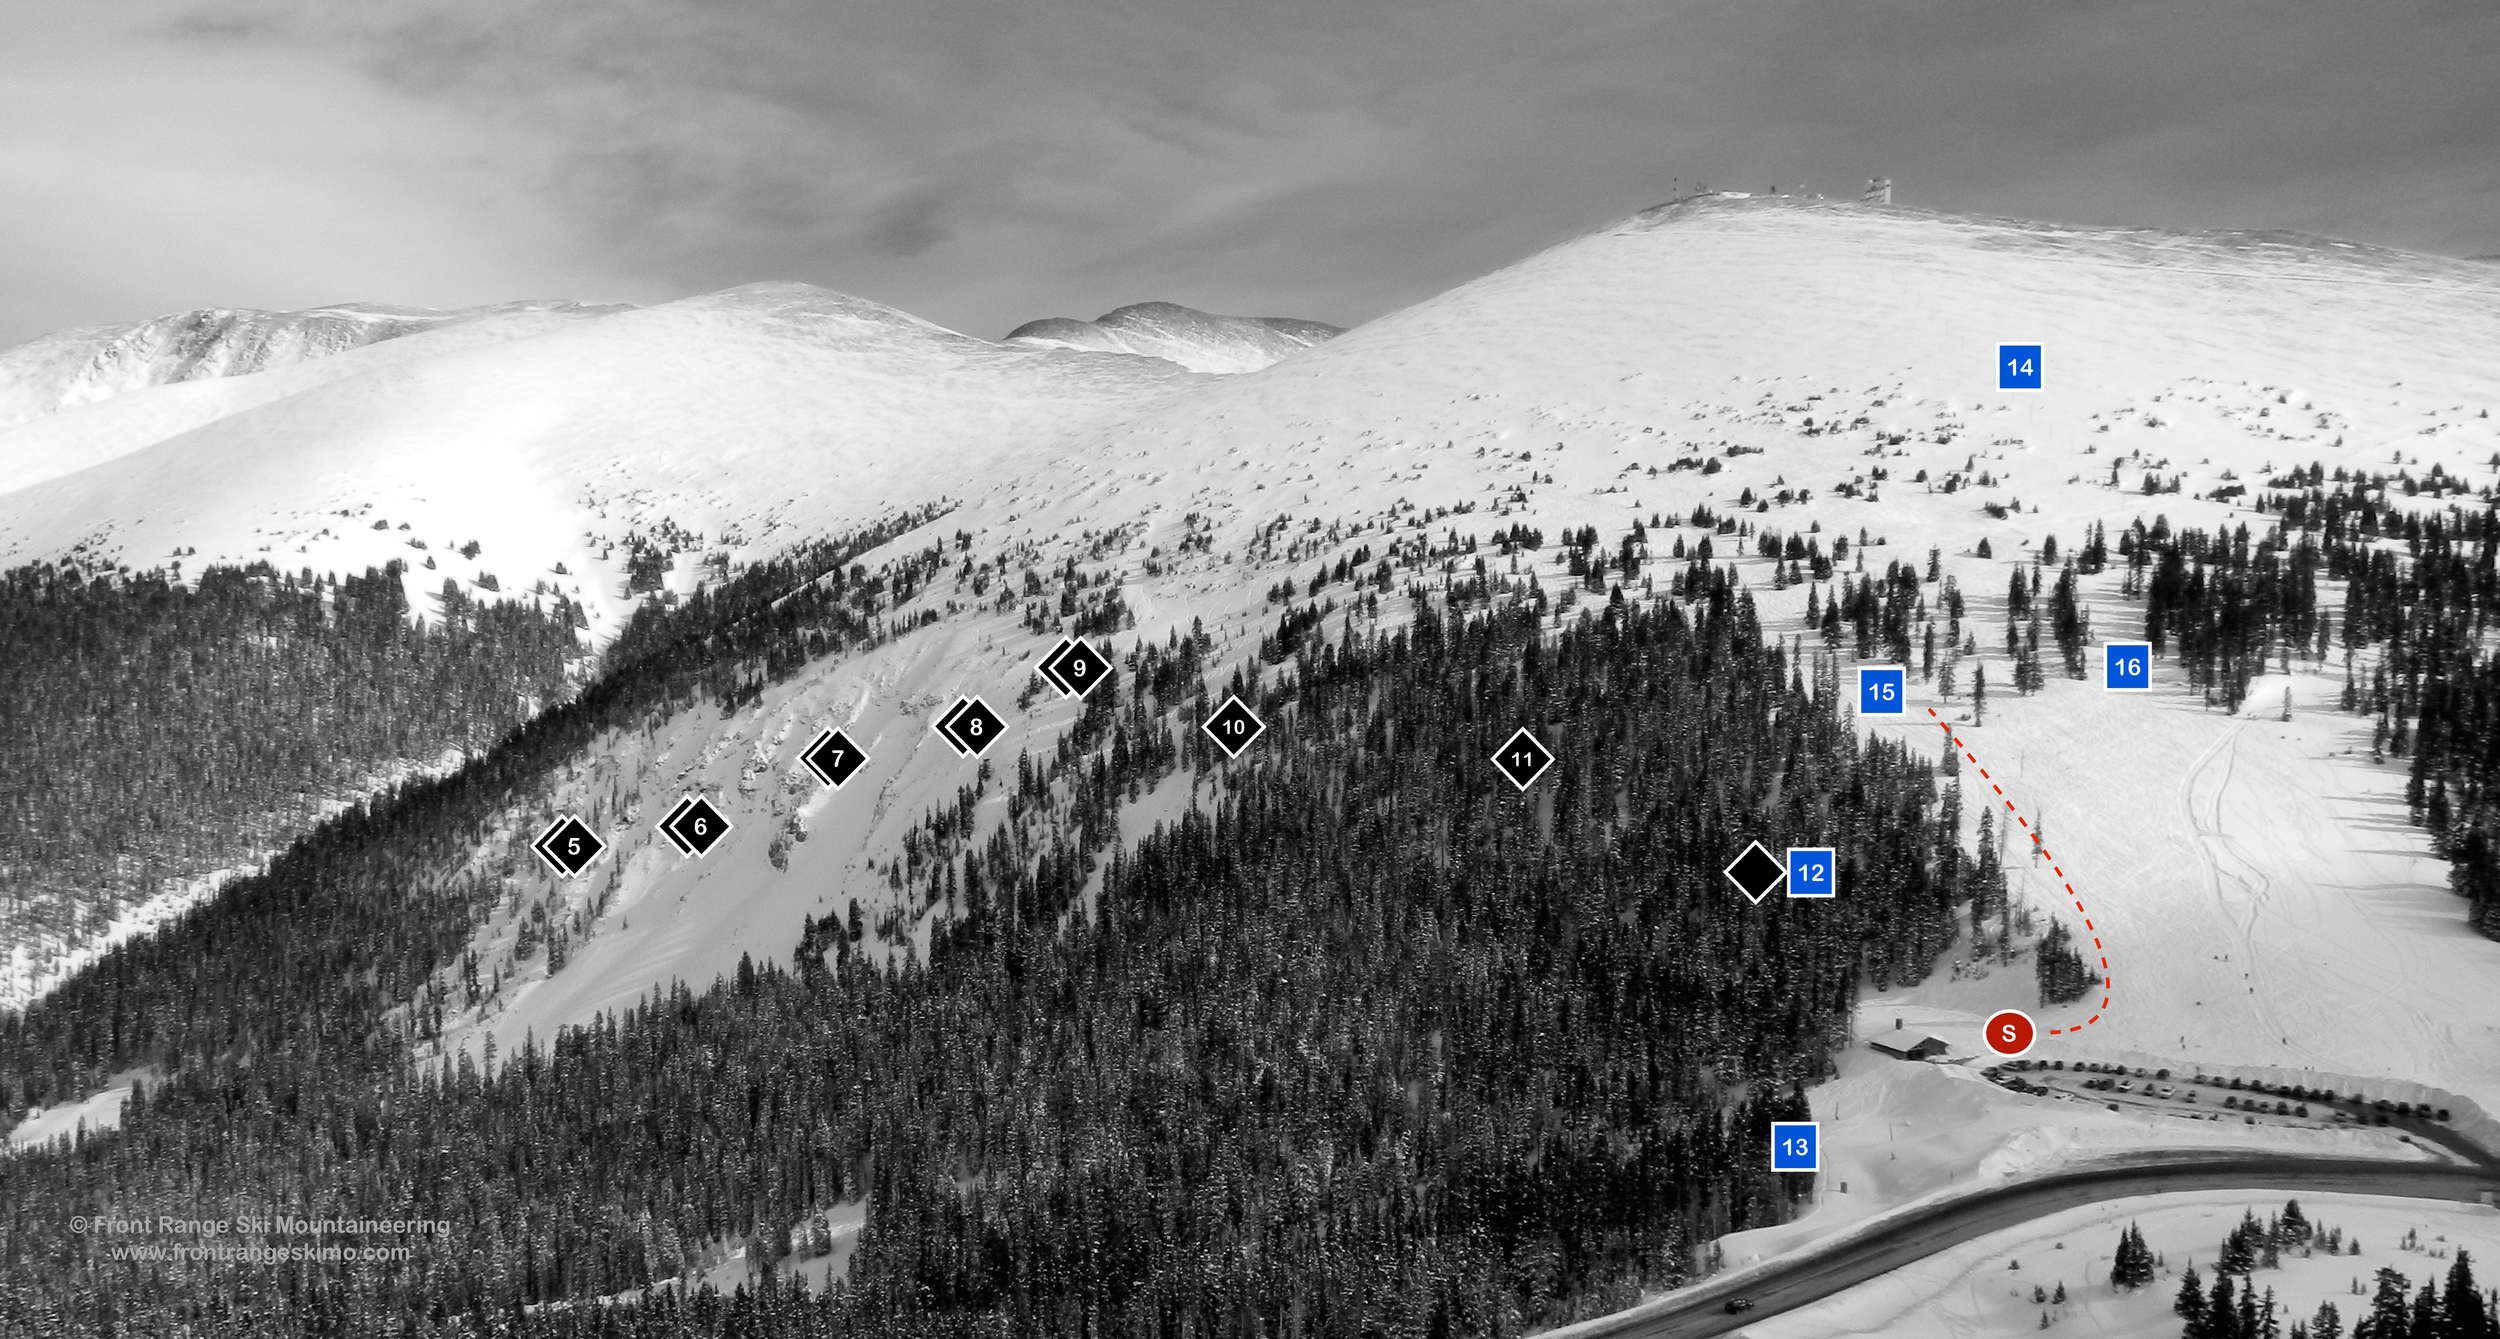 Berthoud Pass Hell's Half Acre & East Side from the West.